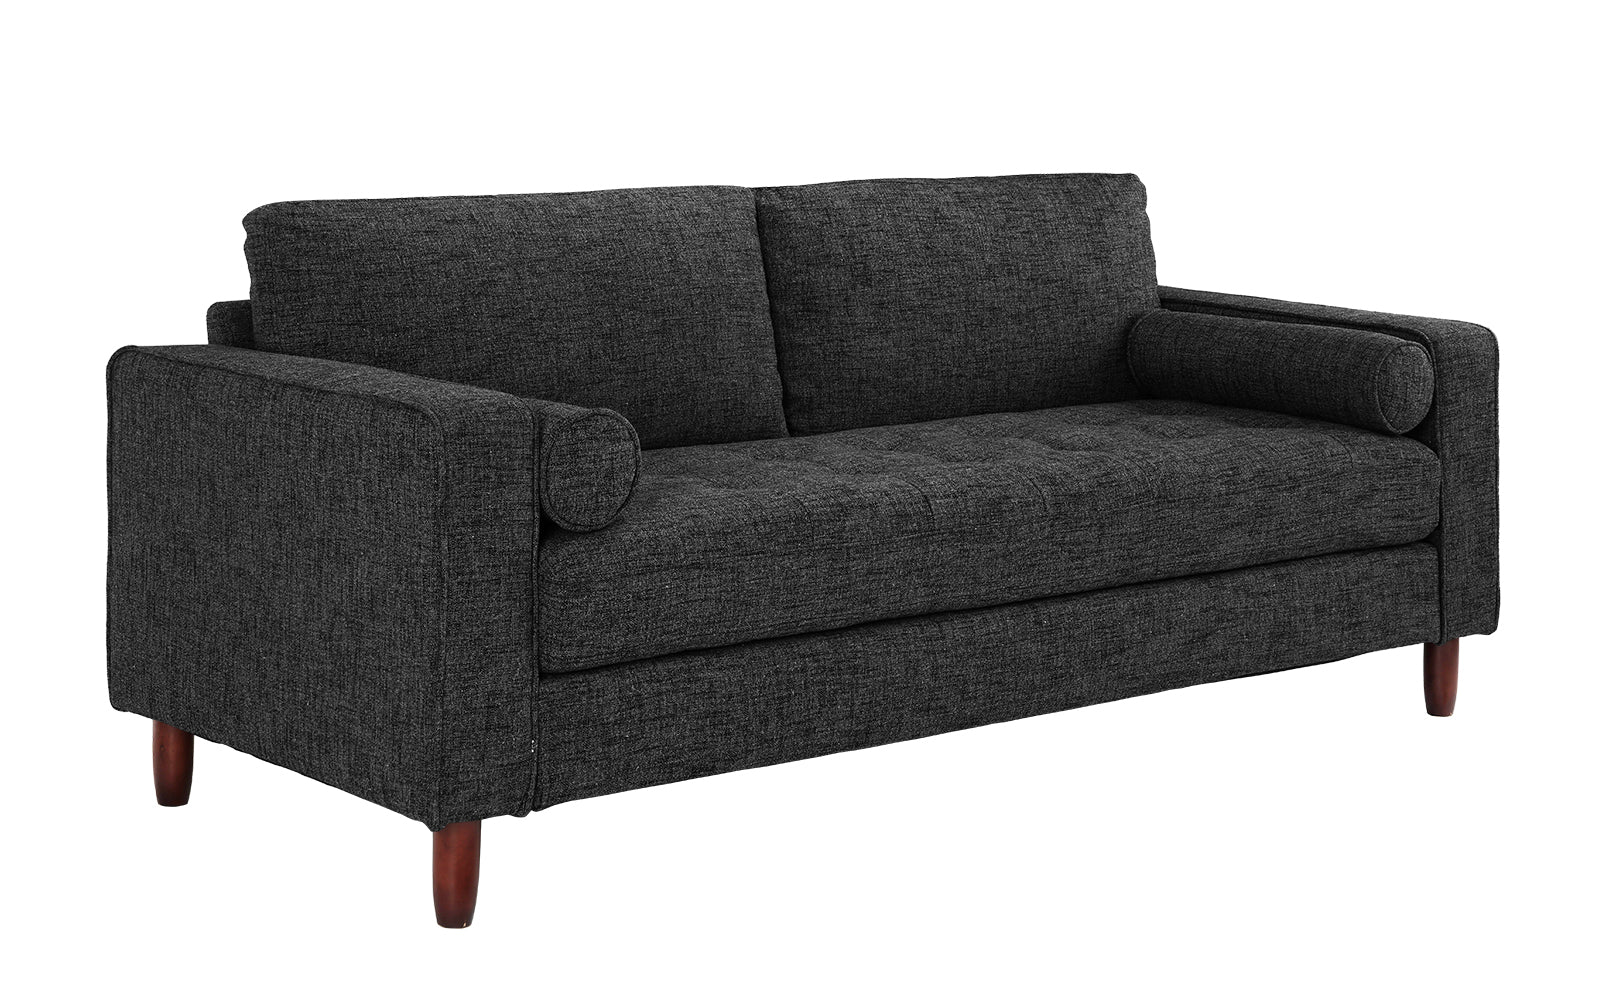 Awesome Ethan Mid Century Modern Fabric Sofa With Bolster Pillows Machost Co Dining Chair Design Ideas Machostcouk